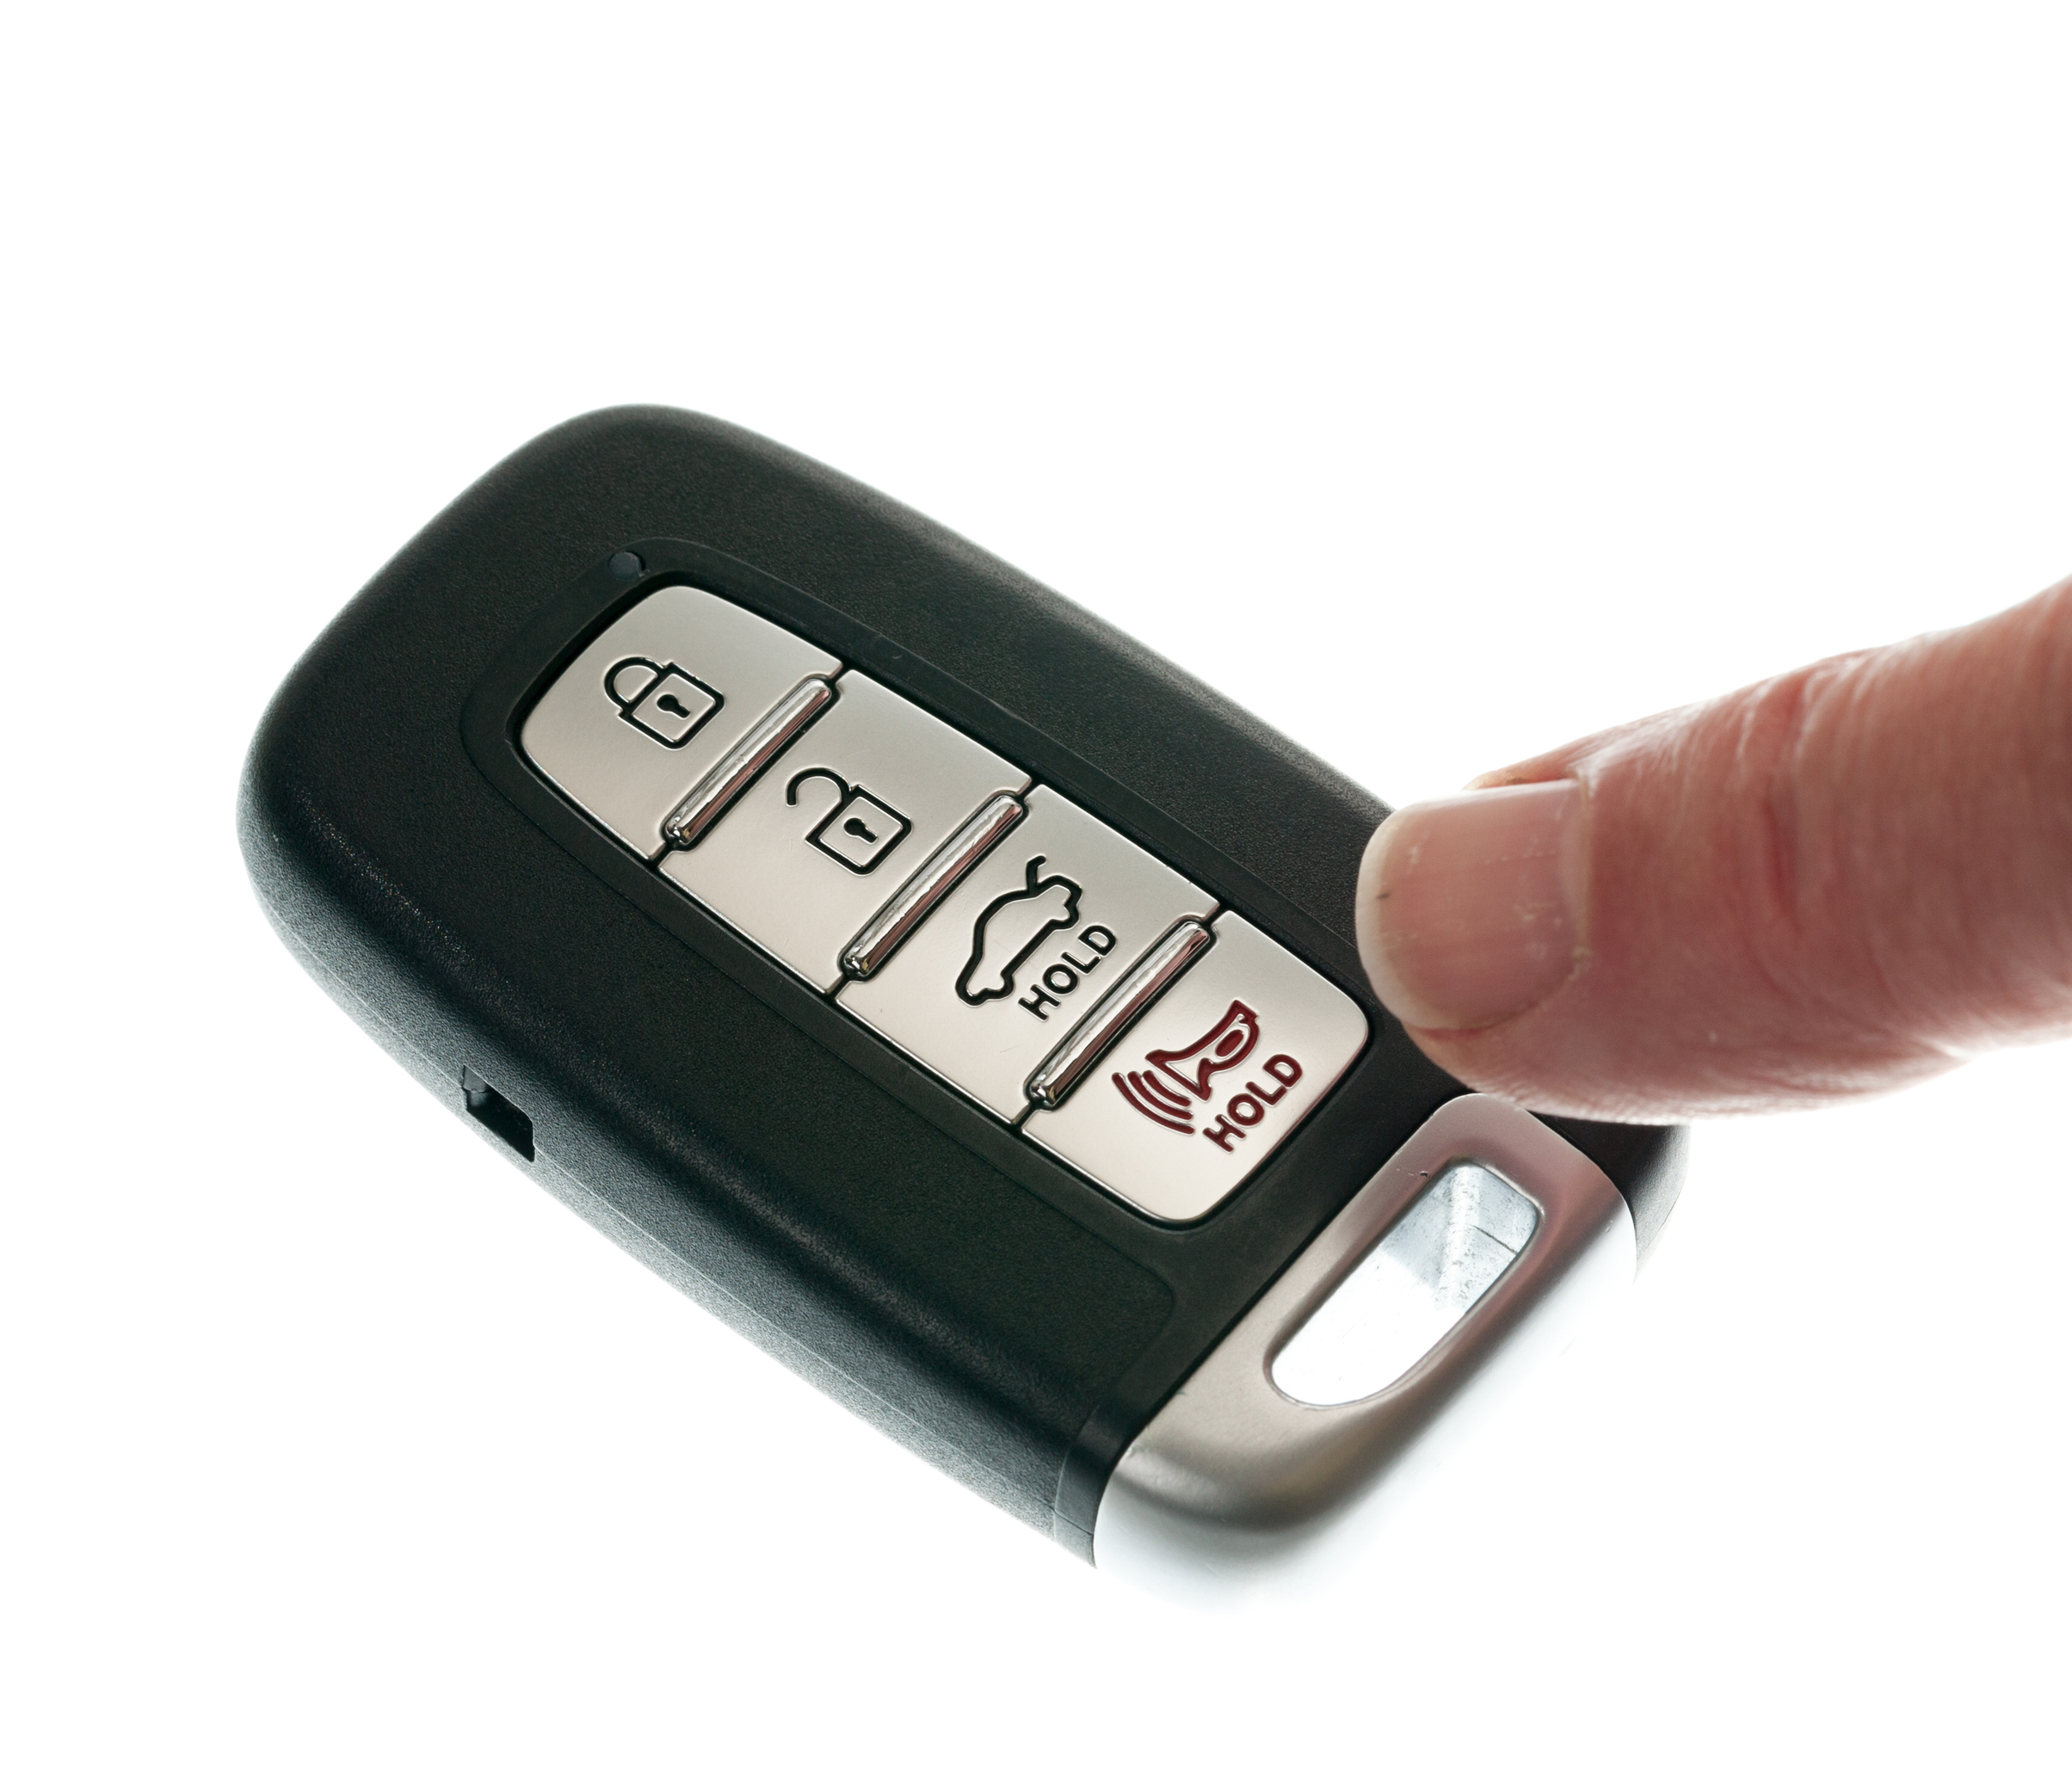 simple car hack open millions wireless key systems threatpost the first stop for security news. Black Bedroom Furniture Sets. Home Design Ideas